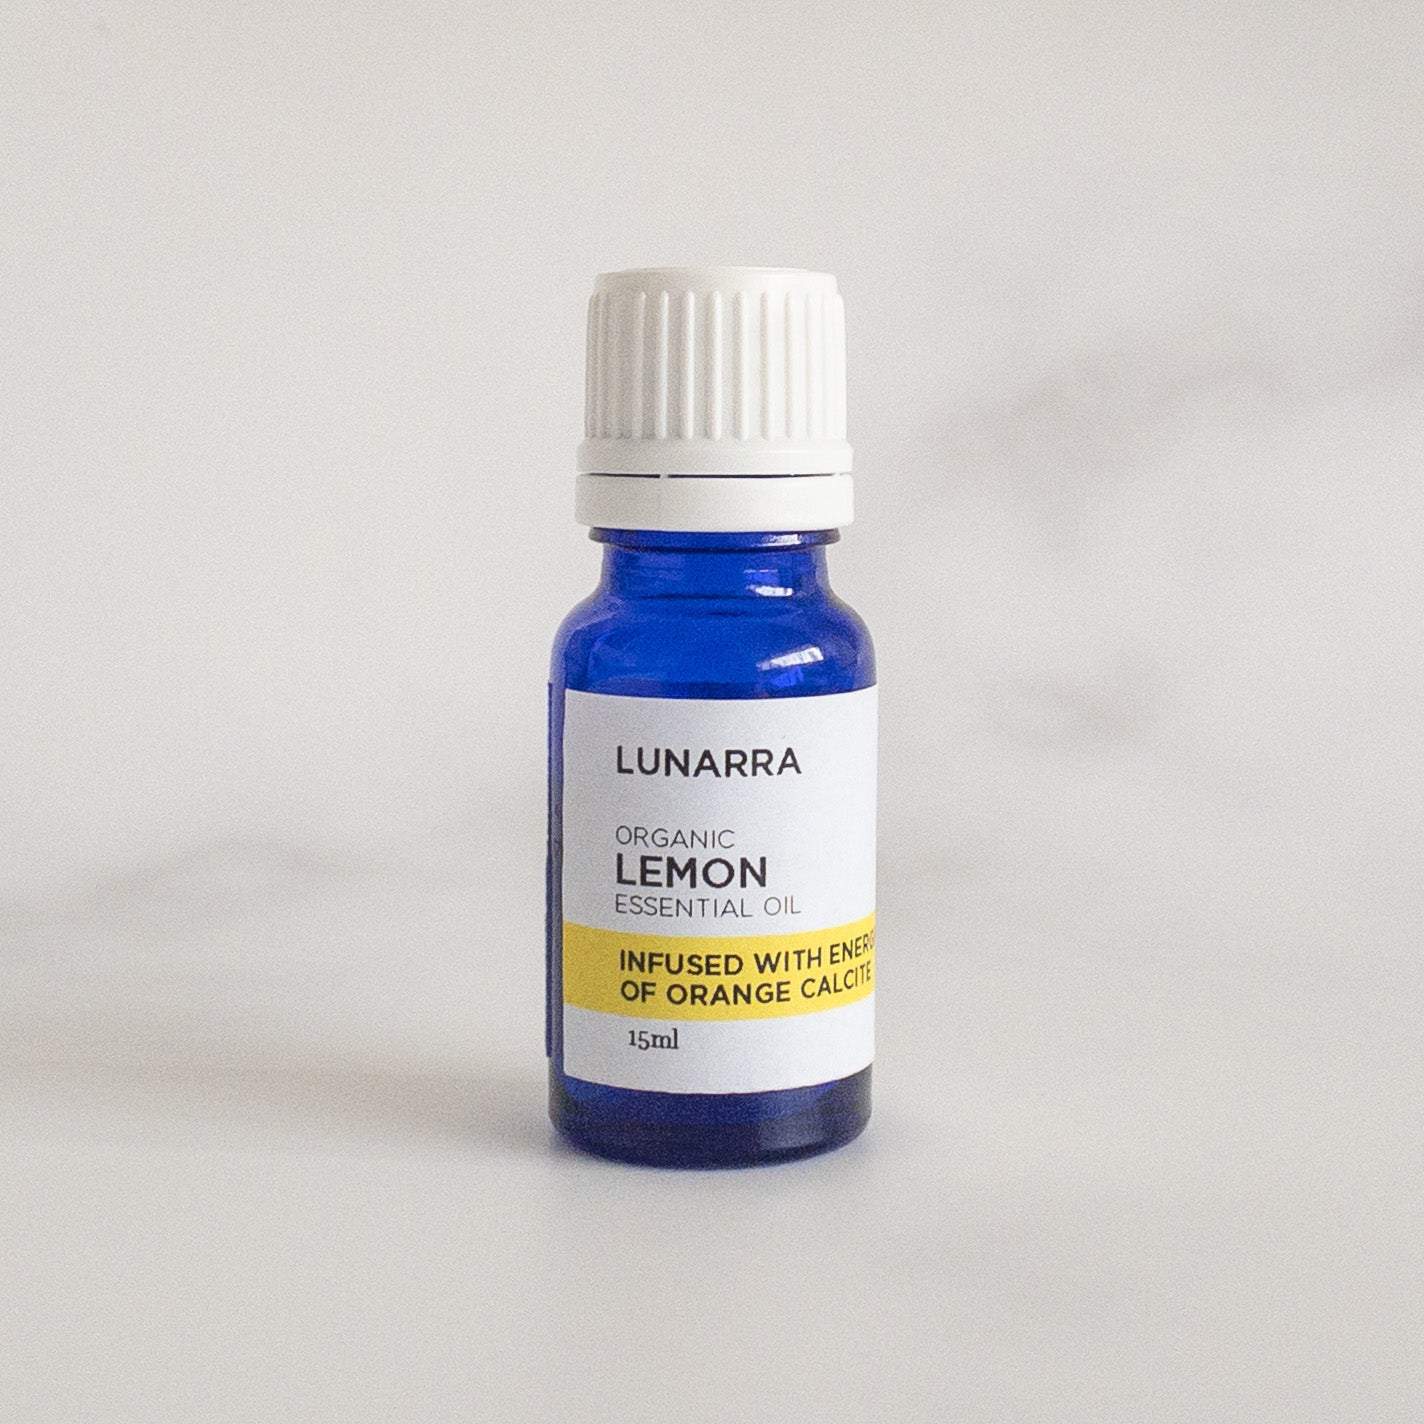 Organic Lemon Essential Oil Infused with the Energies of Orange Calcite 15ml